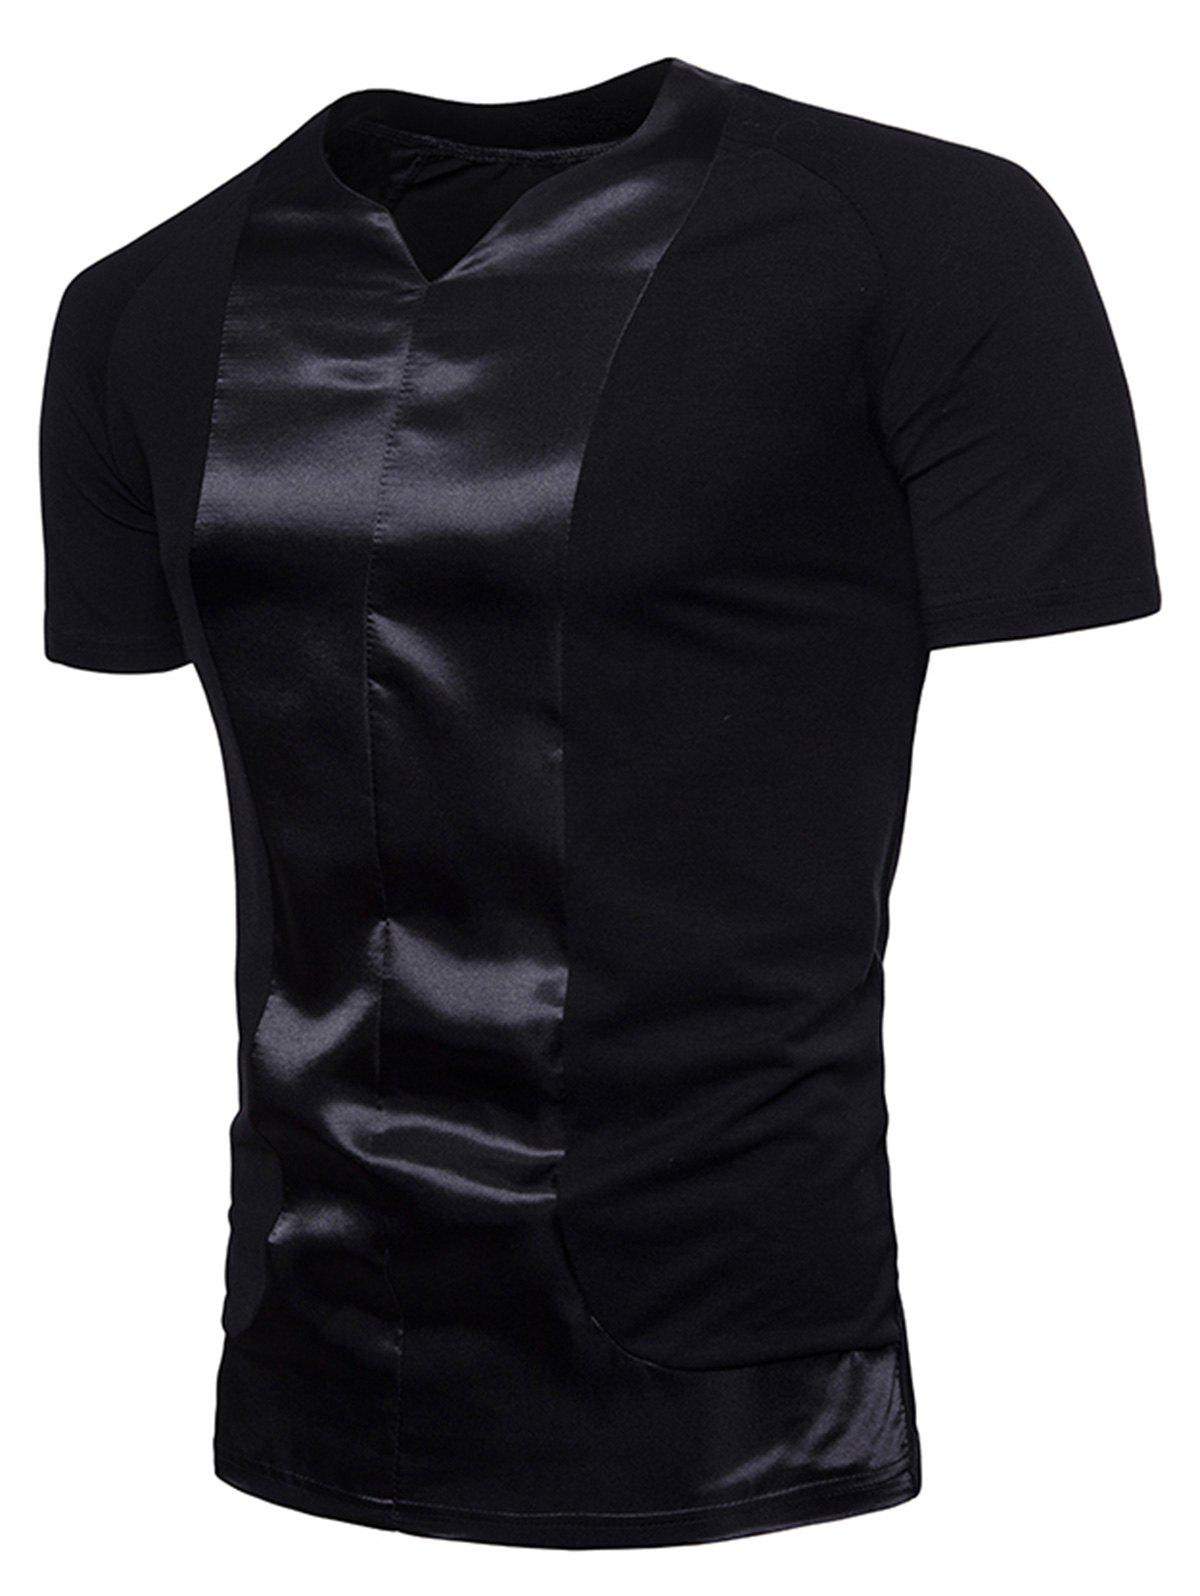 Crew Neck Satin Panel T-shirt - BLACK 2XL